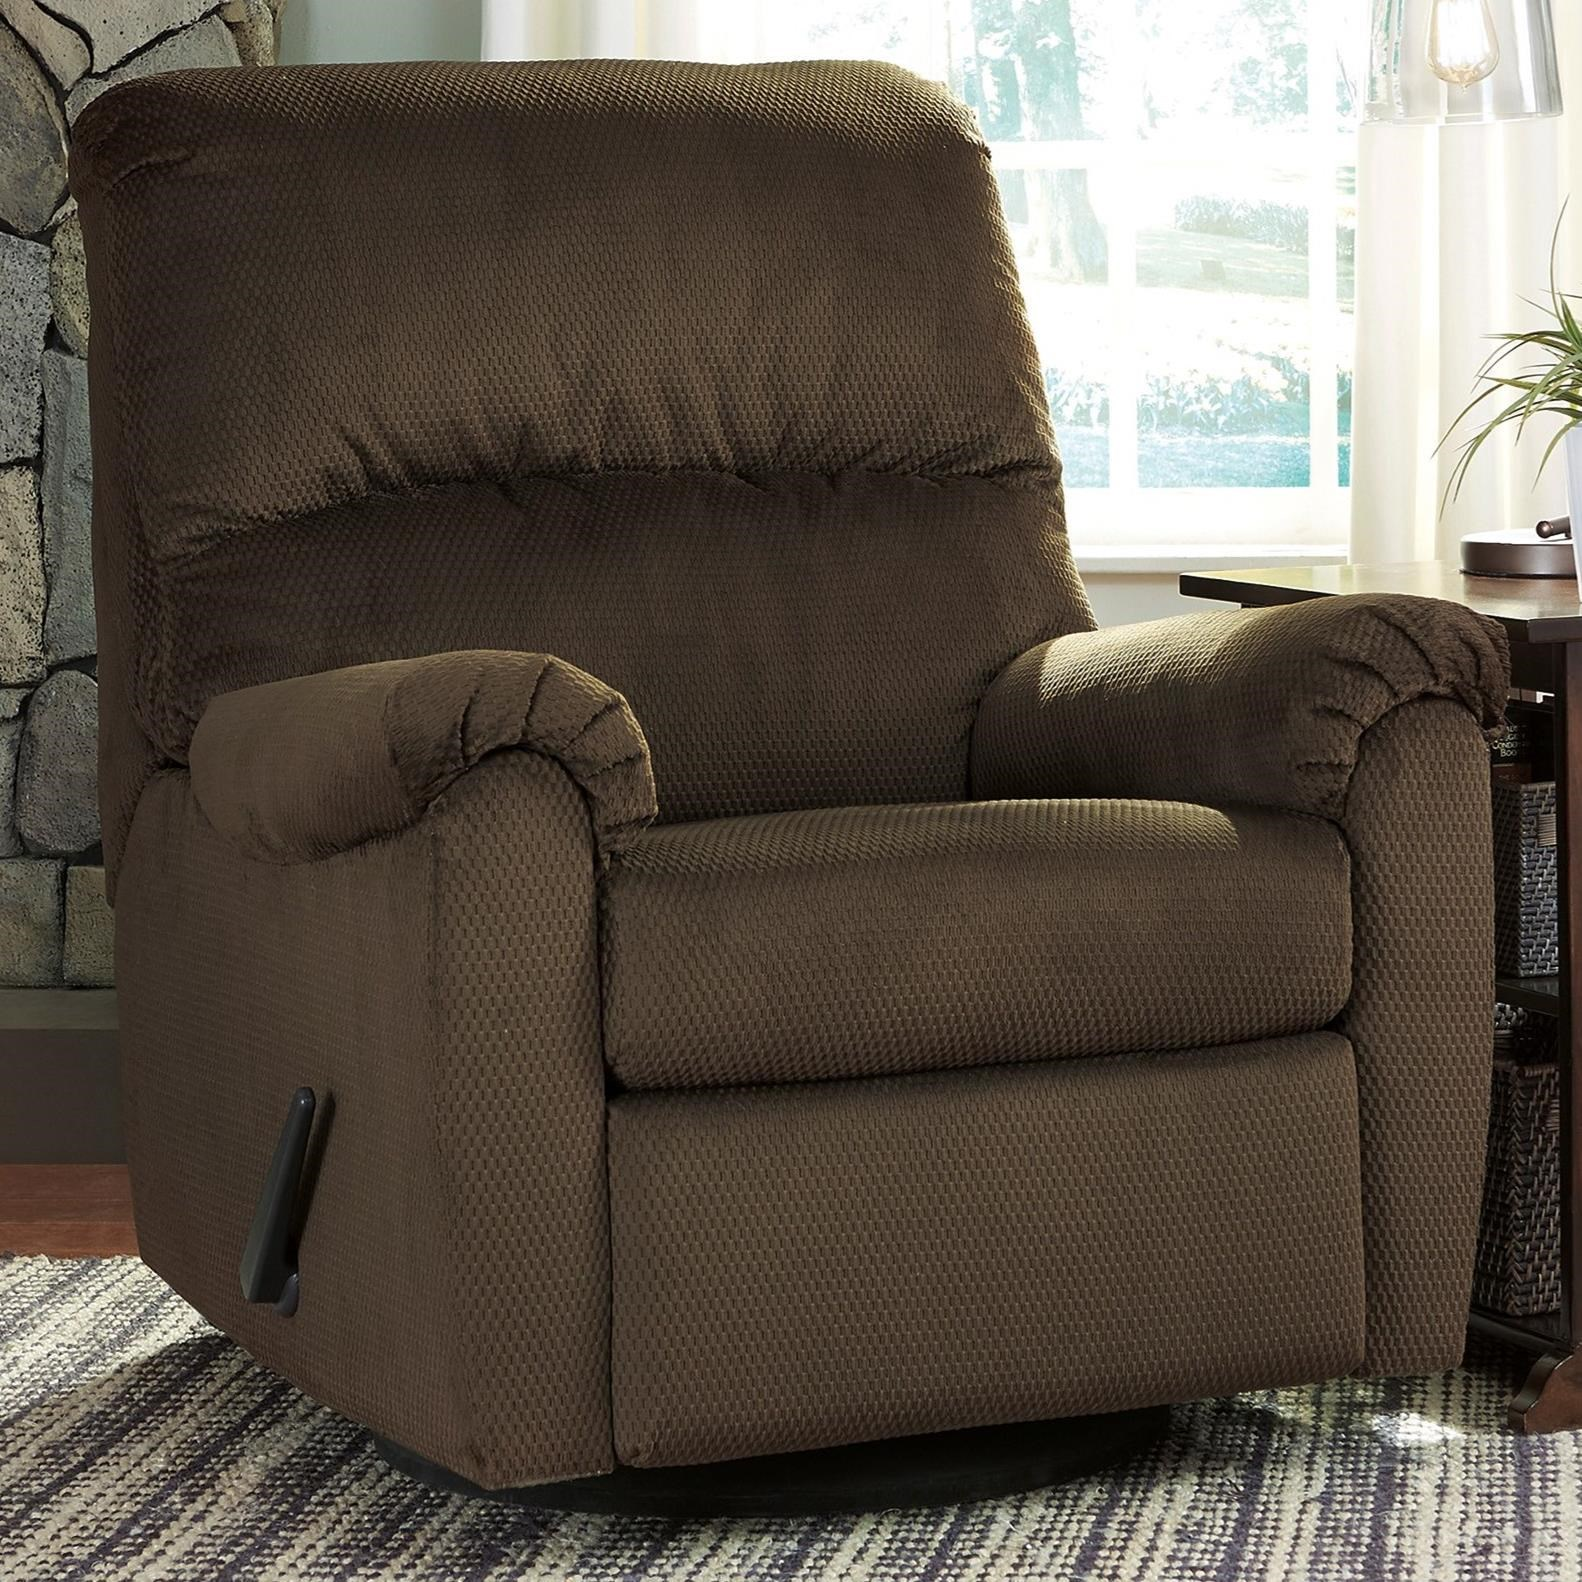 Signature Design By Ashley Bronwyn Swivel Glider Recliner With 360 Degree Swivel Rife 39 S Home